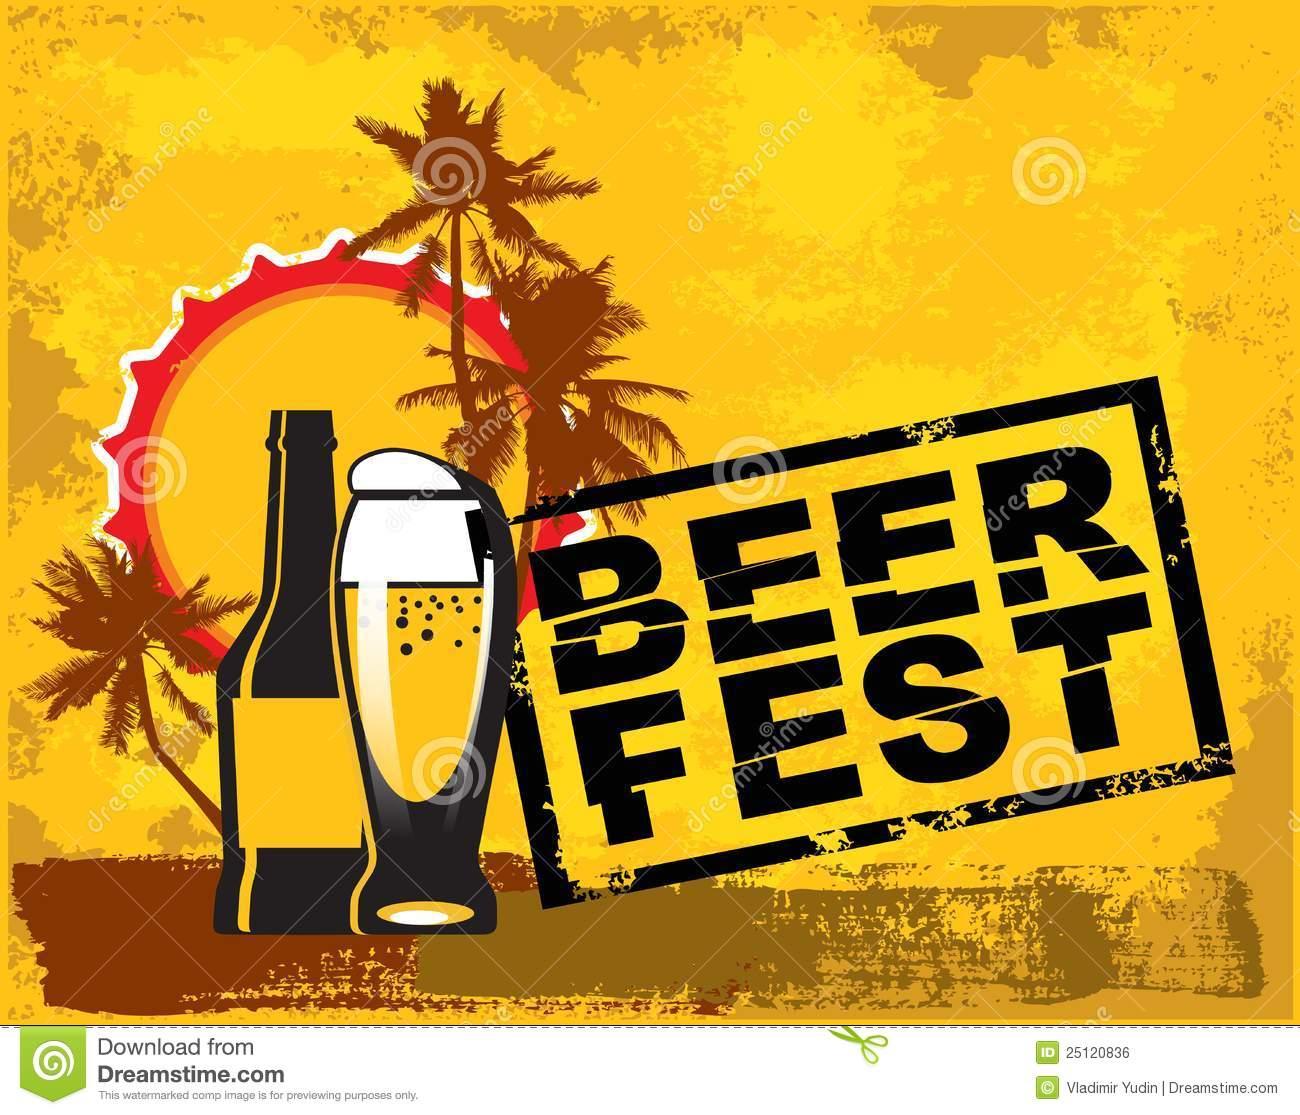 Beer Fest Royalty Free Stock Image - Image: 25120836